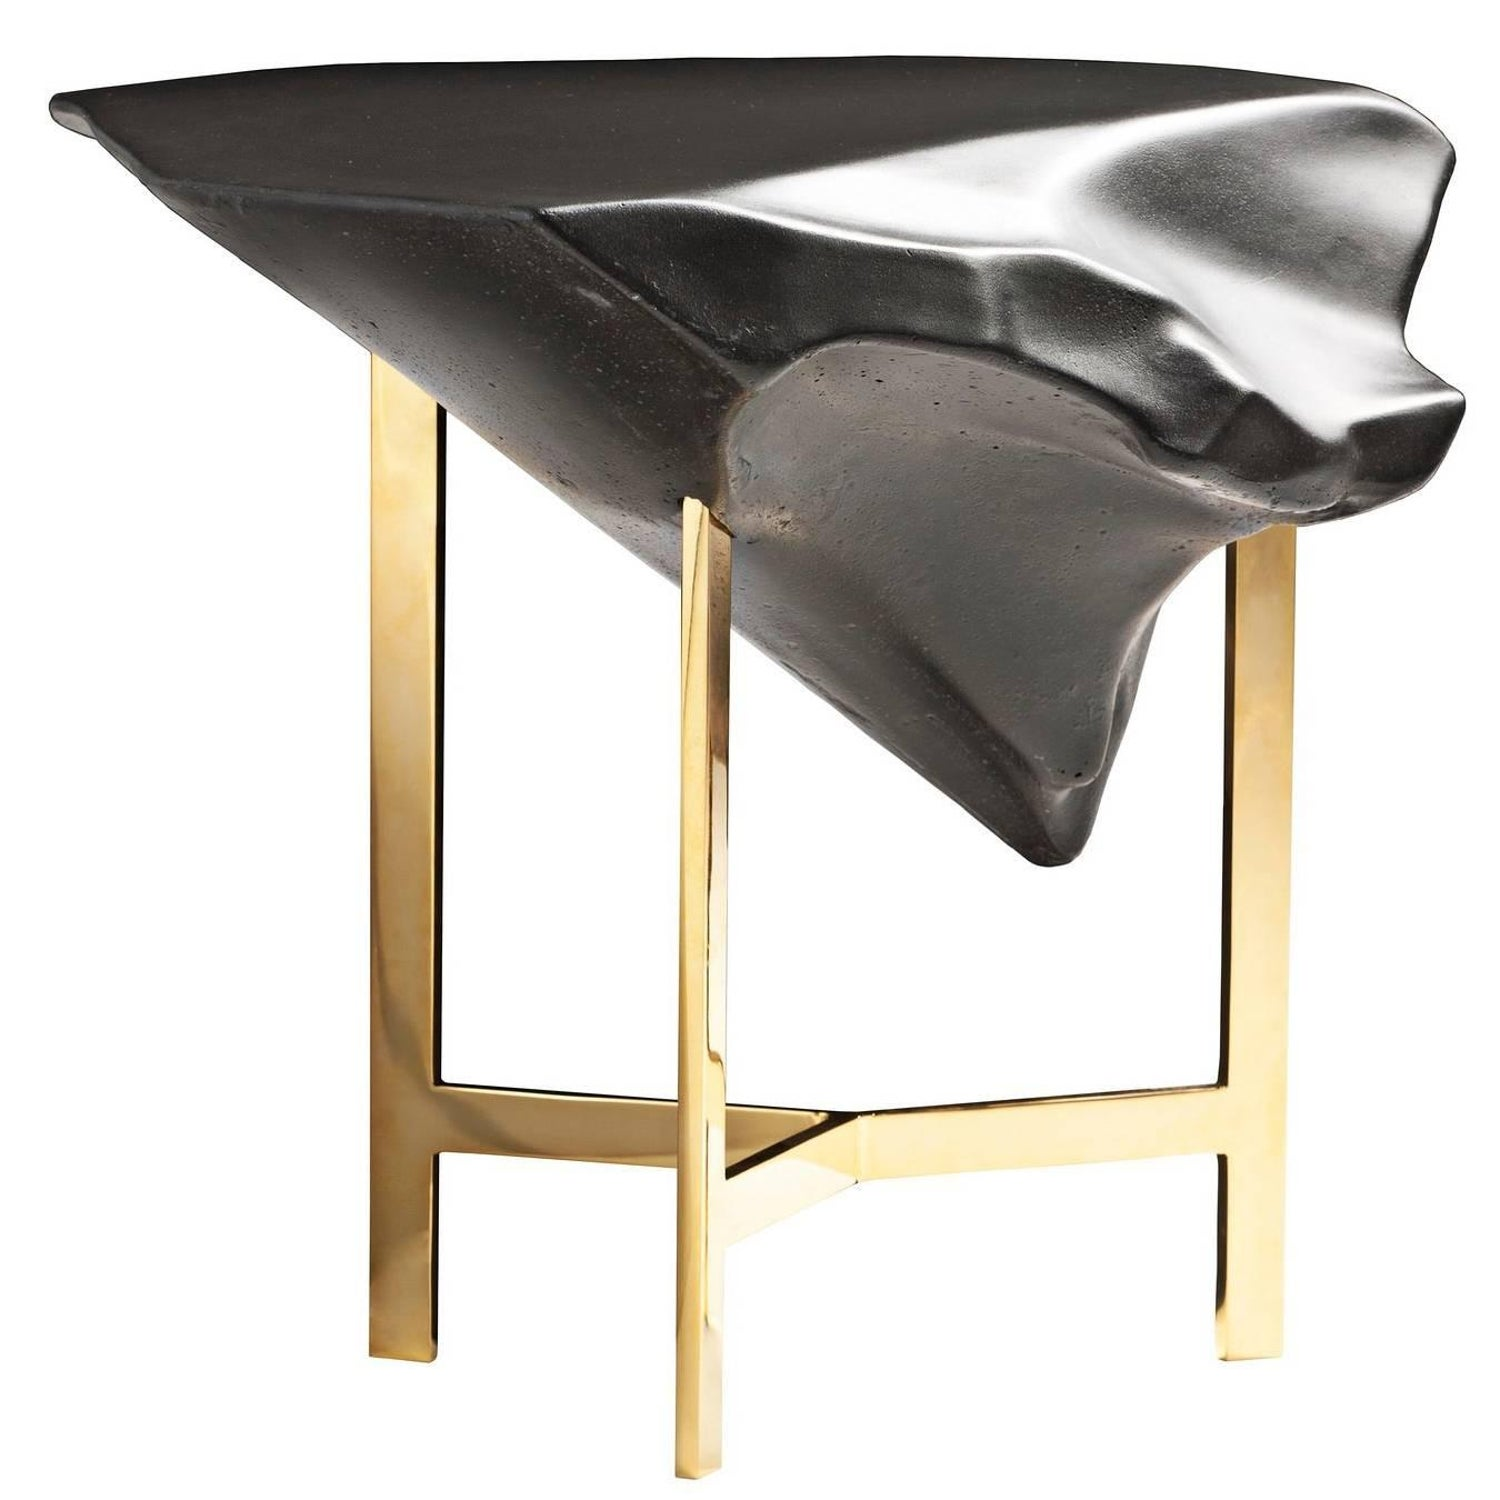 Gold Coffee and Cocktail Tables 136 For Sale at 1stdibs